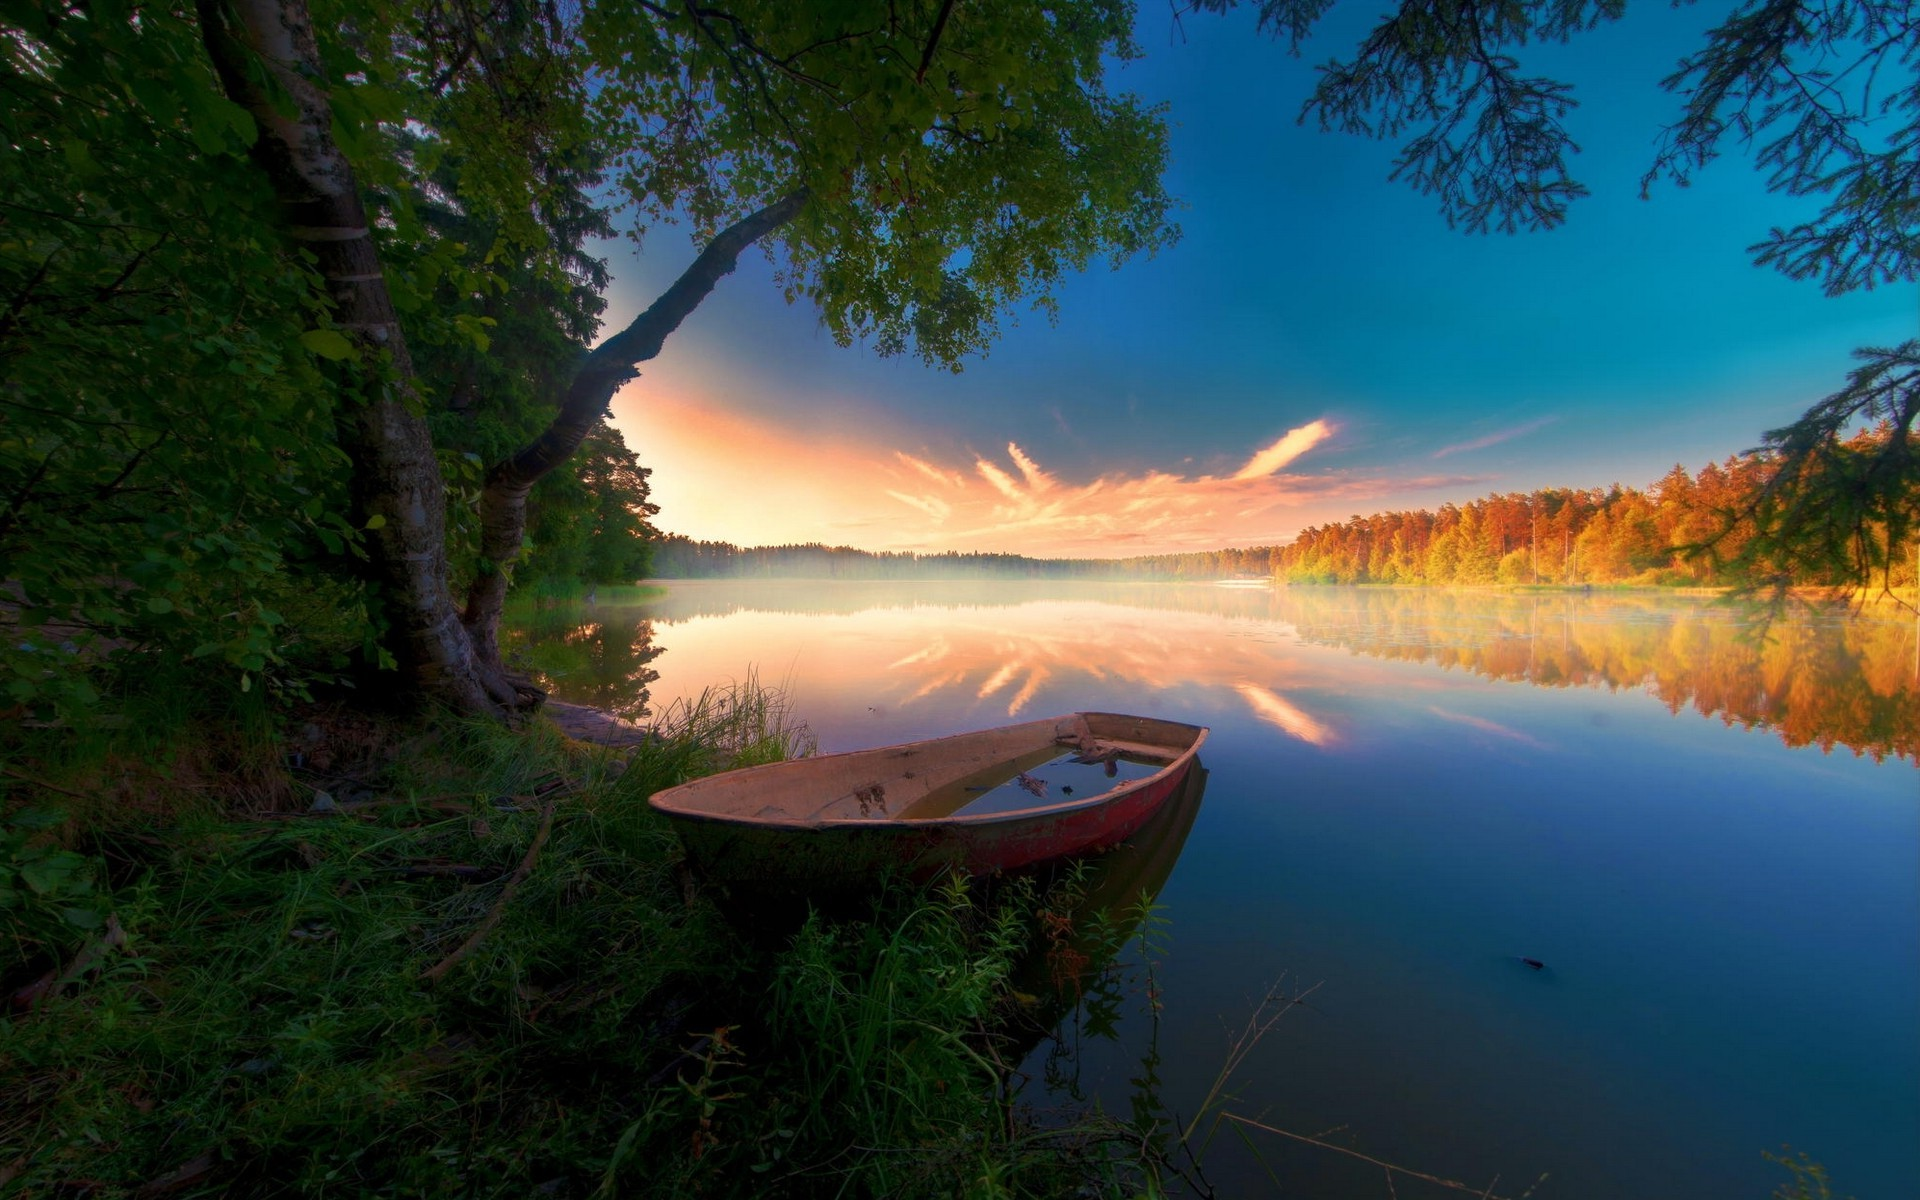 Fall Home Screen Wallpaper Nature Landscape Sunrise Abandoned Boat Forest Fall